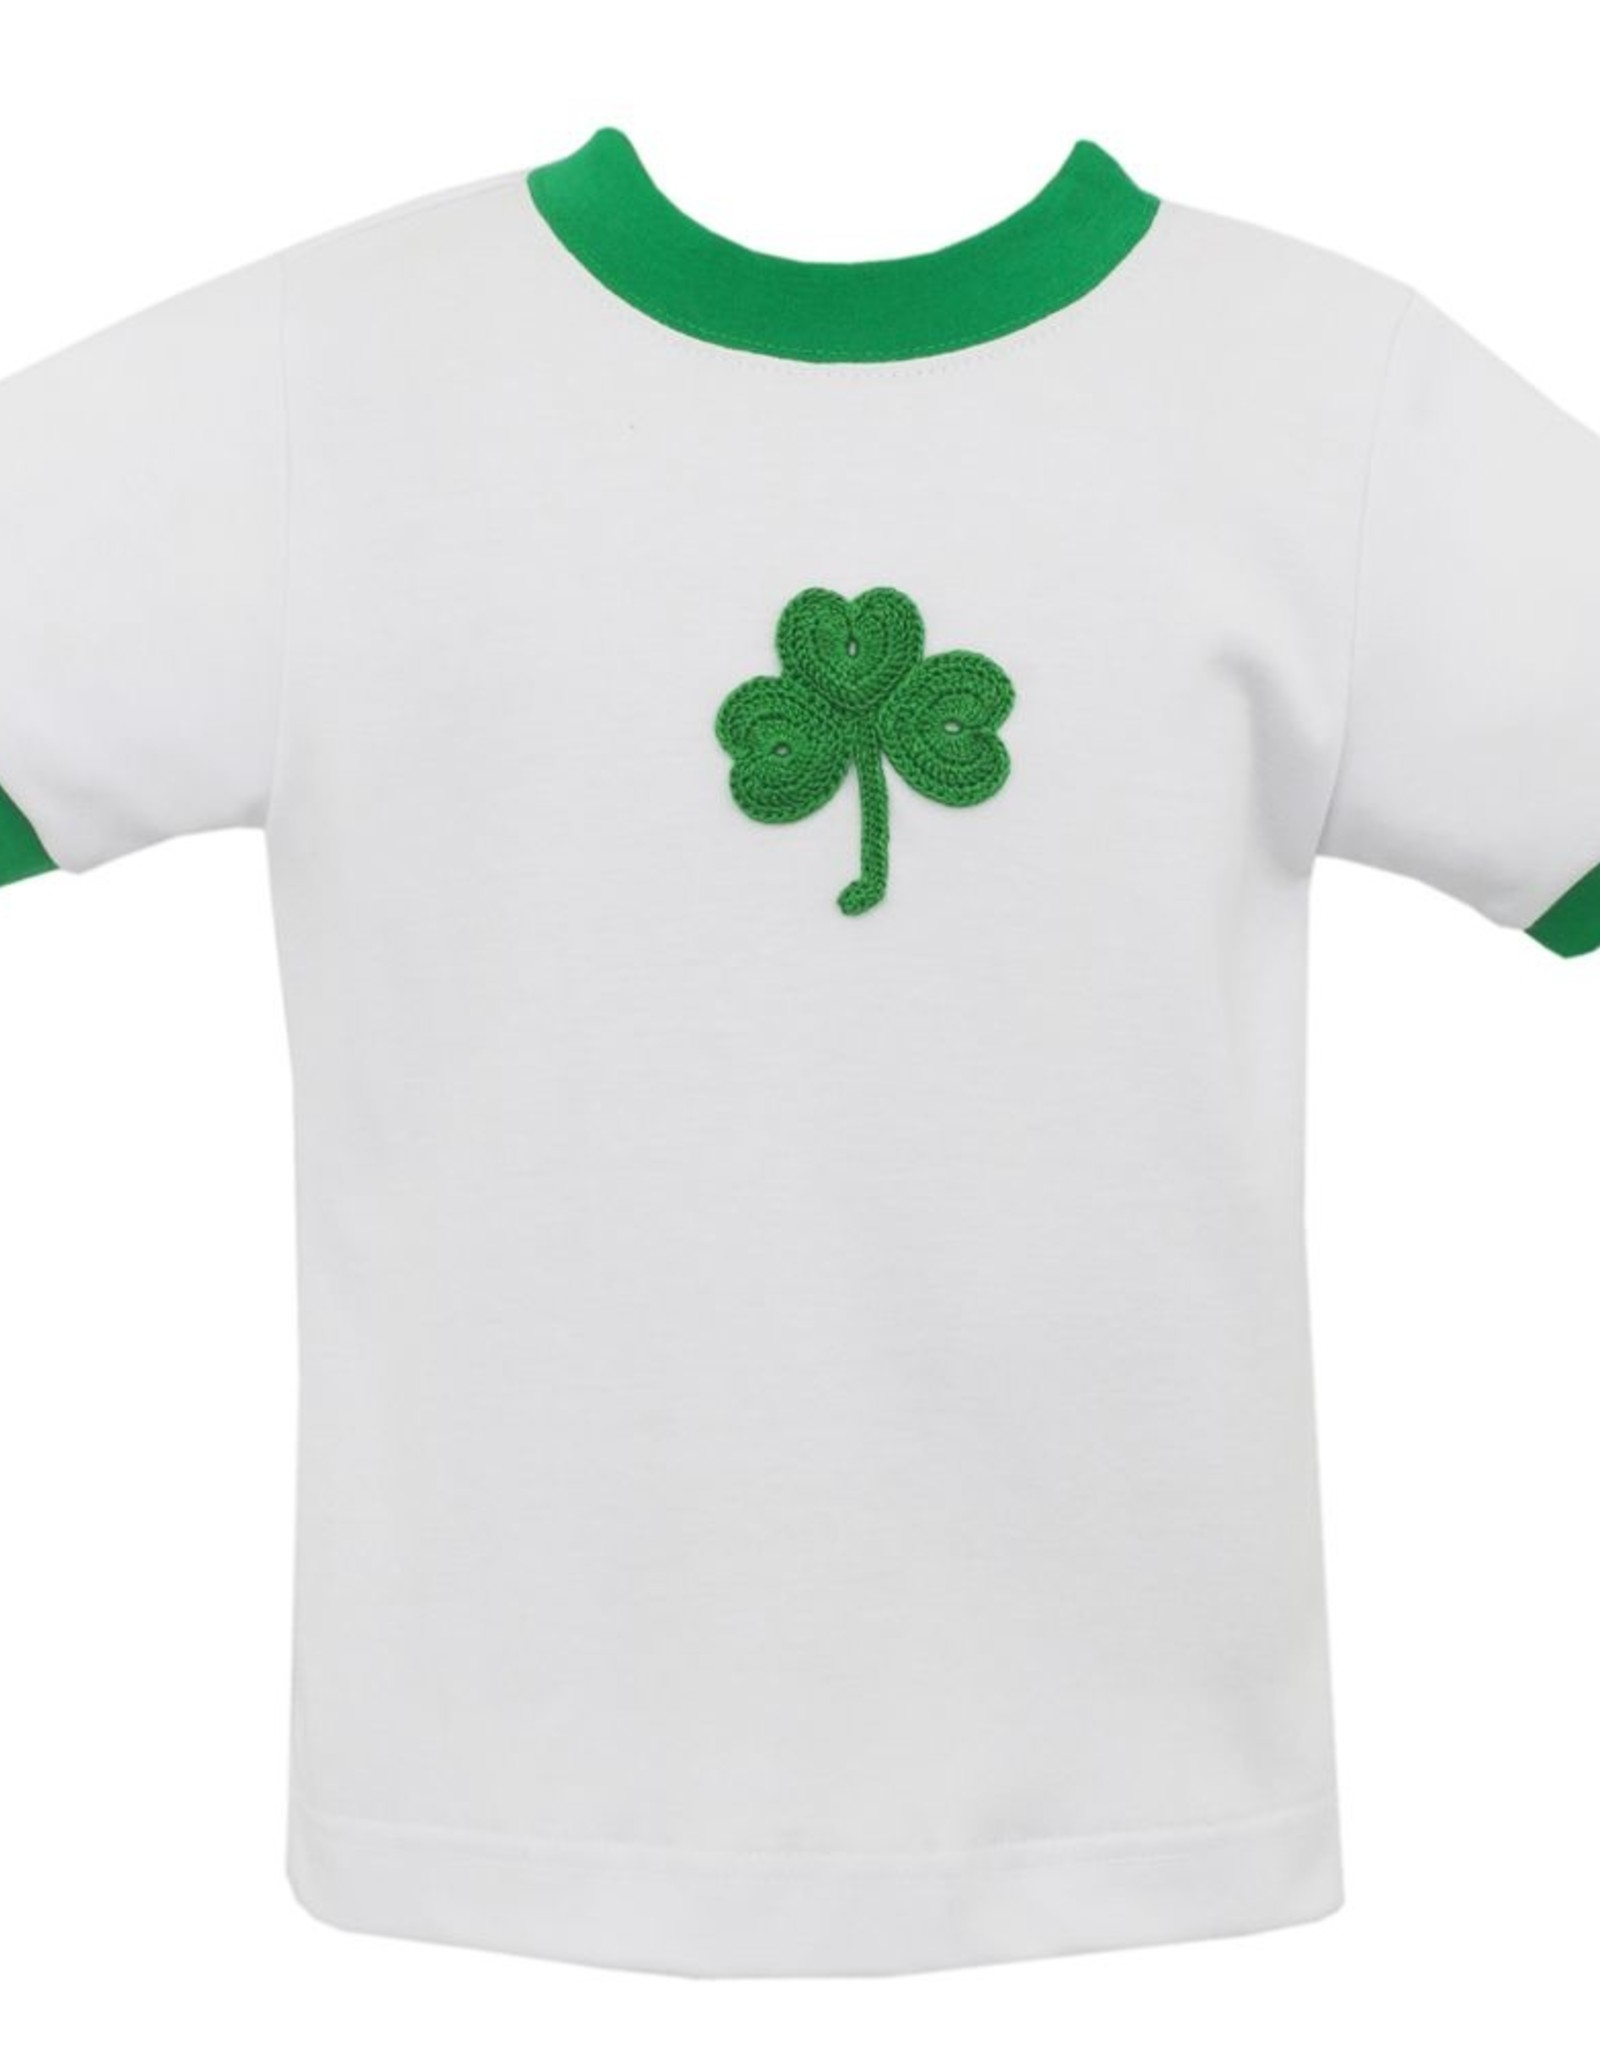 Claire and Charlie Shamrock White T-shirt